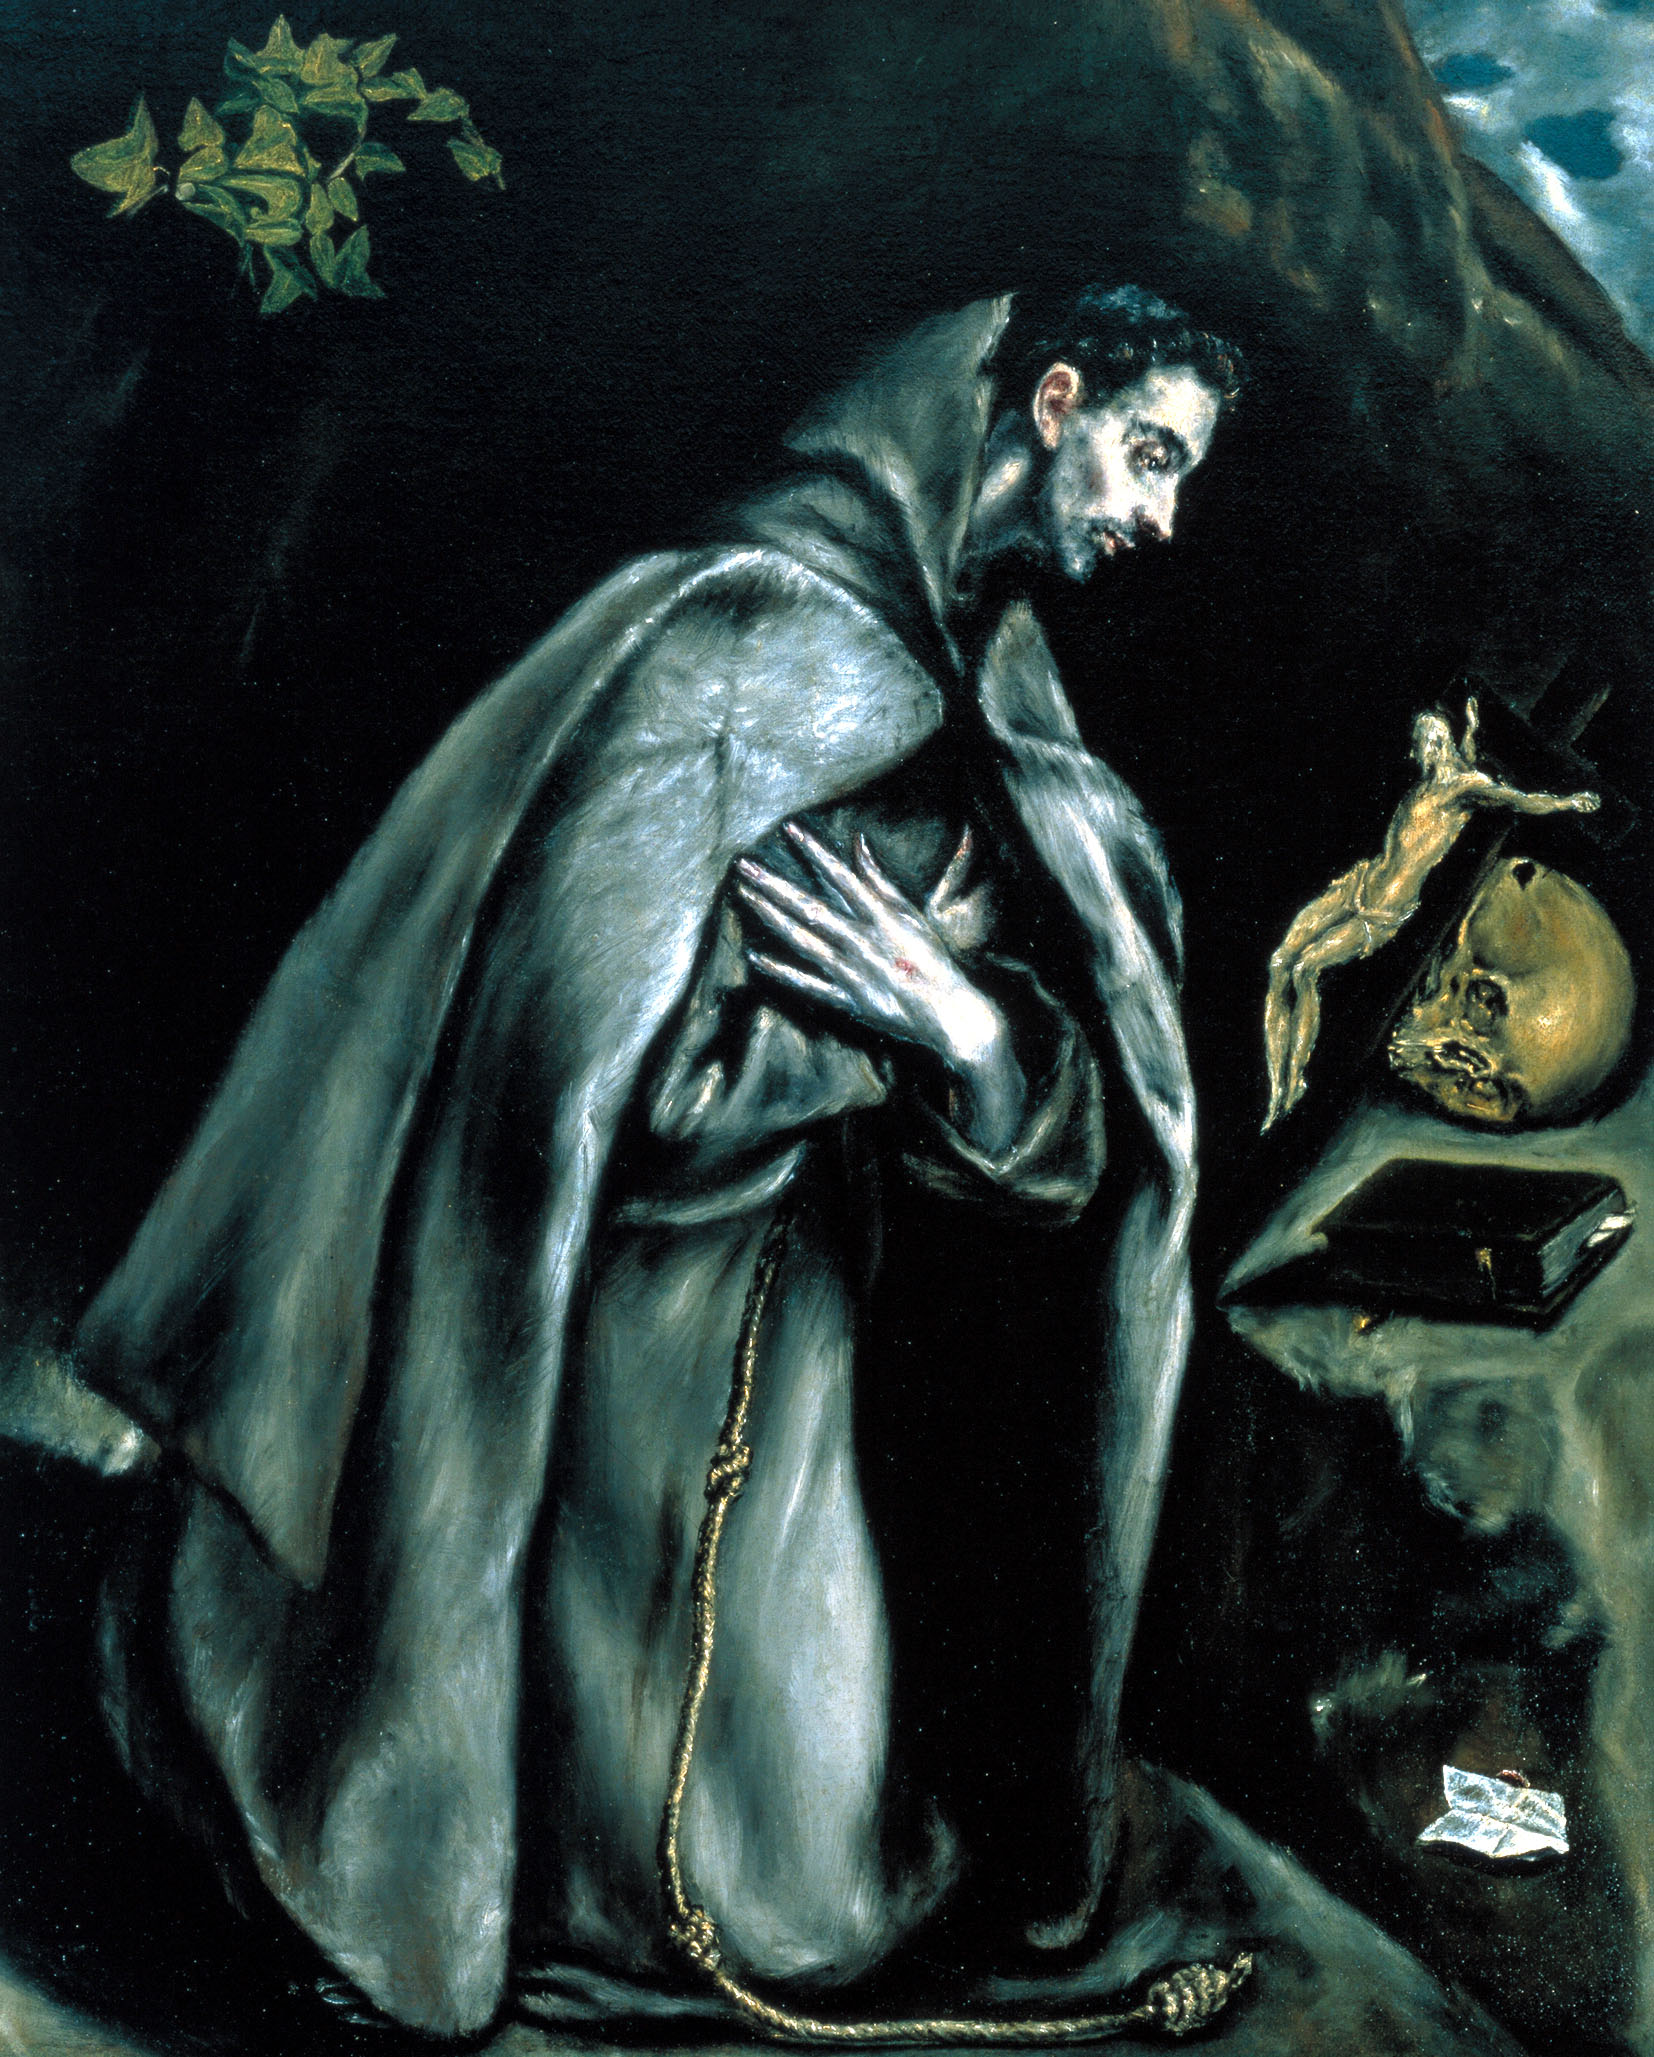 saint francis buddhist dating site Readings & reflections: thursday of the first week in advent & st francis xavier, december 3,2015 a founding member of the jesuit order, francis eagerly accepted a commission to preach the gospel to the peoples of the east.